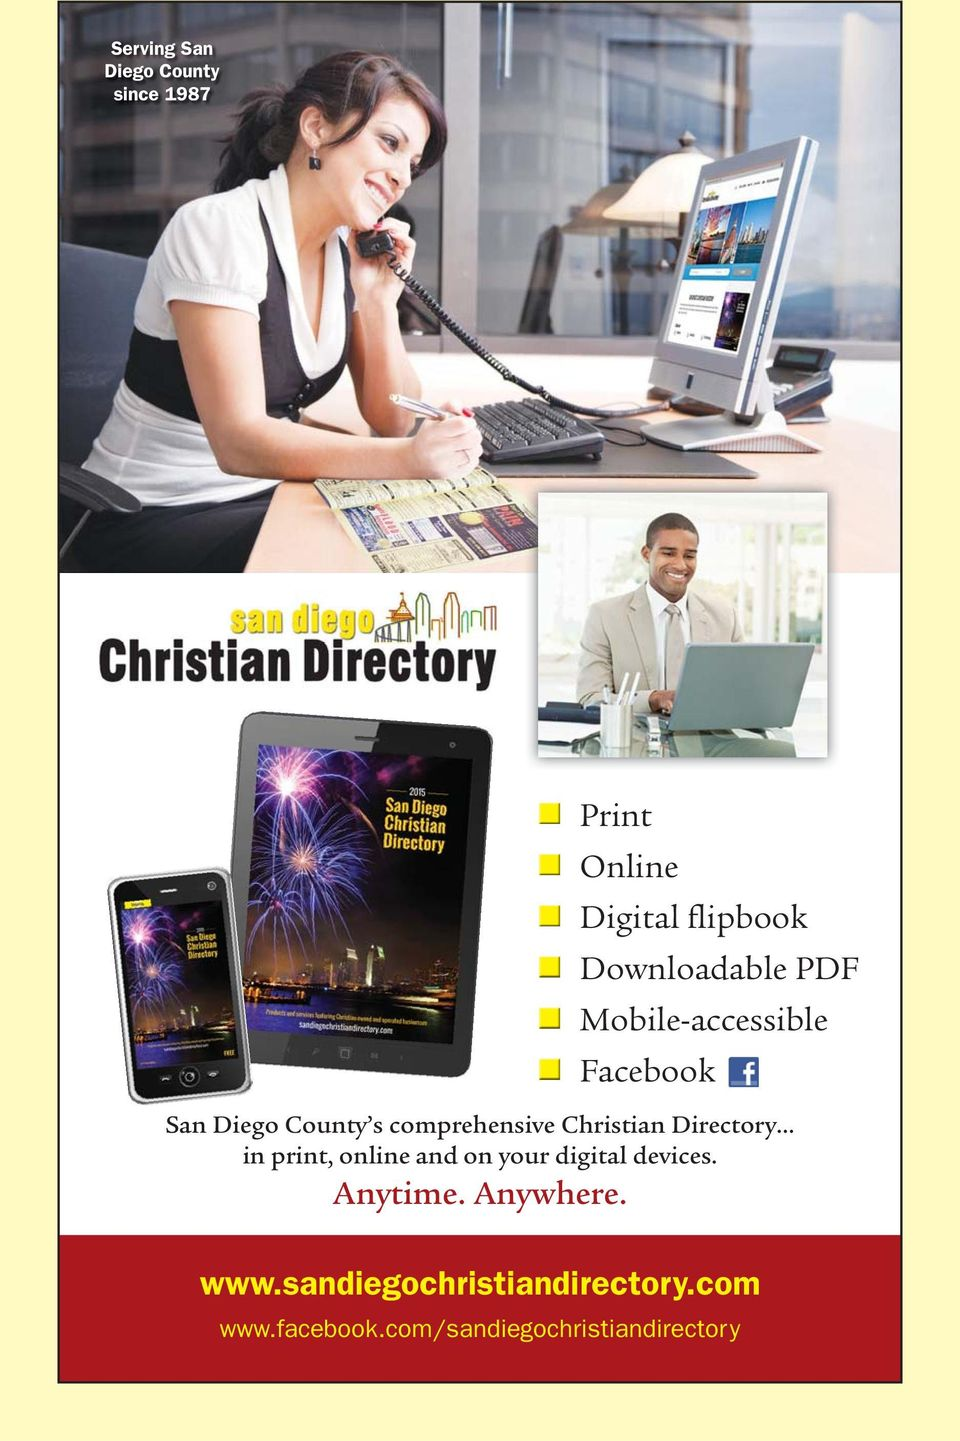 Christian Directory in print, online and on your digital devices. Anytime.